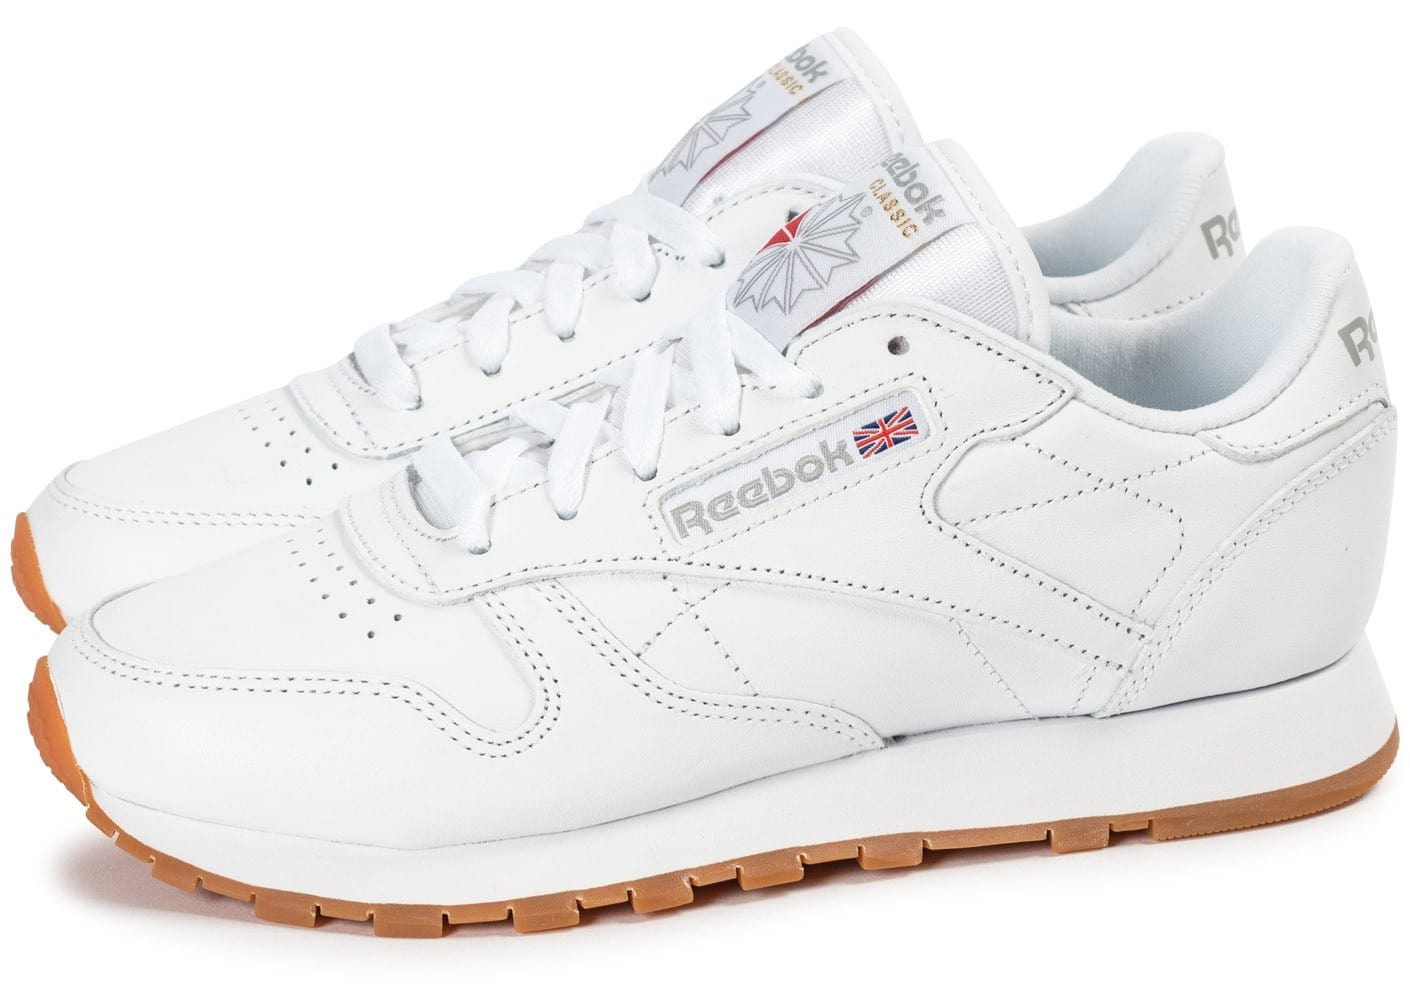 reebok classic leather w gum blanche chaussures pour lyc ens chausport. Black Bedroom Furniture Sets. Home Design Ideas